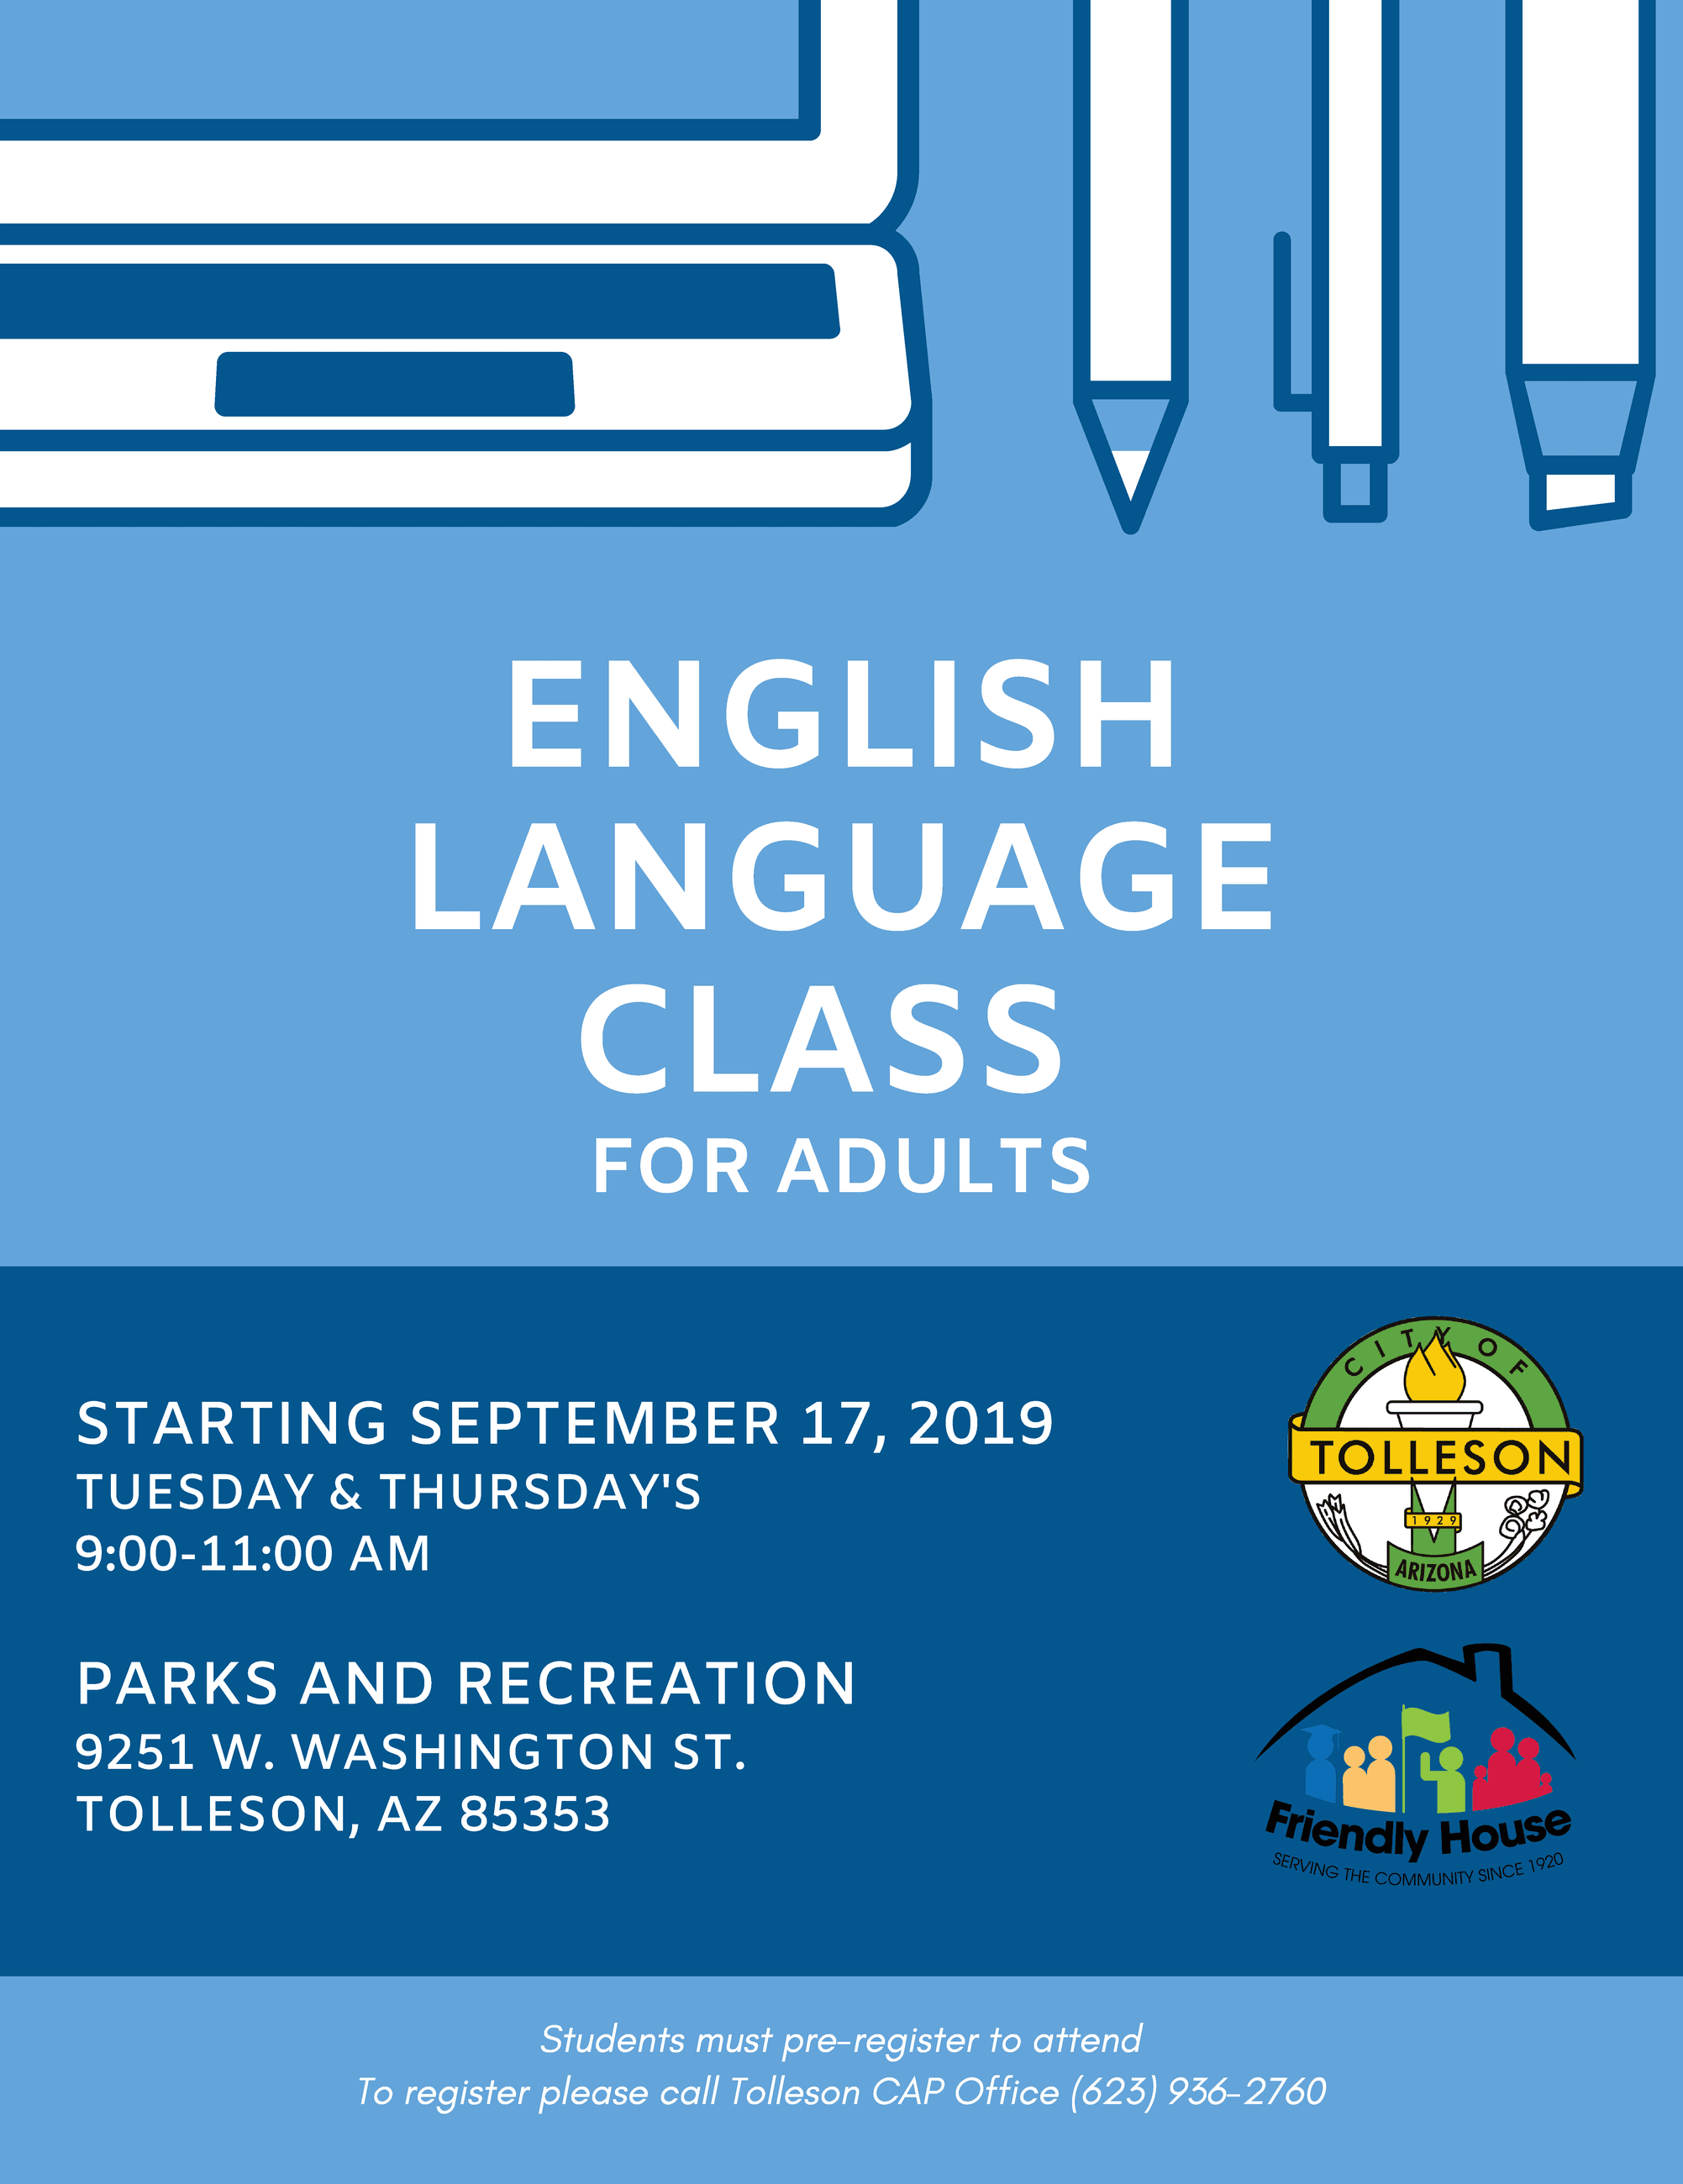 english language class for adults